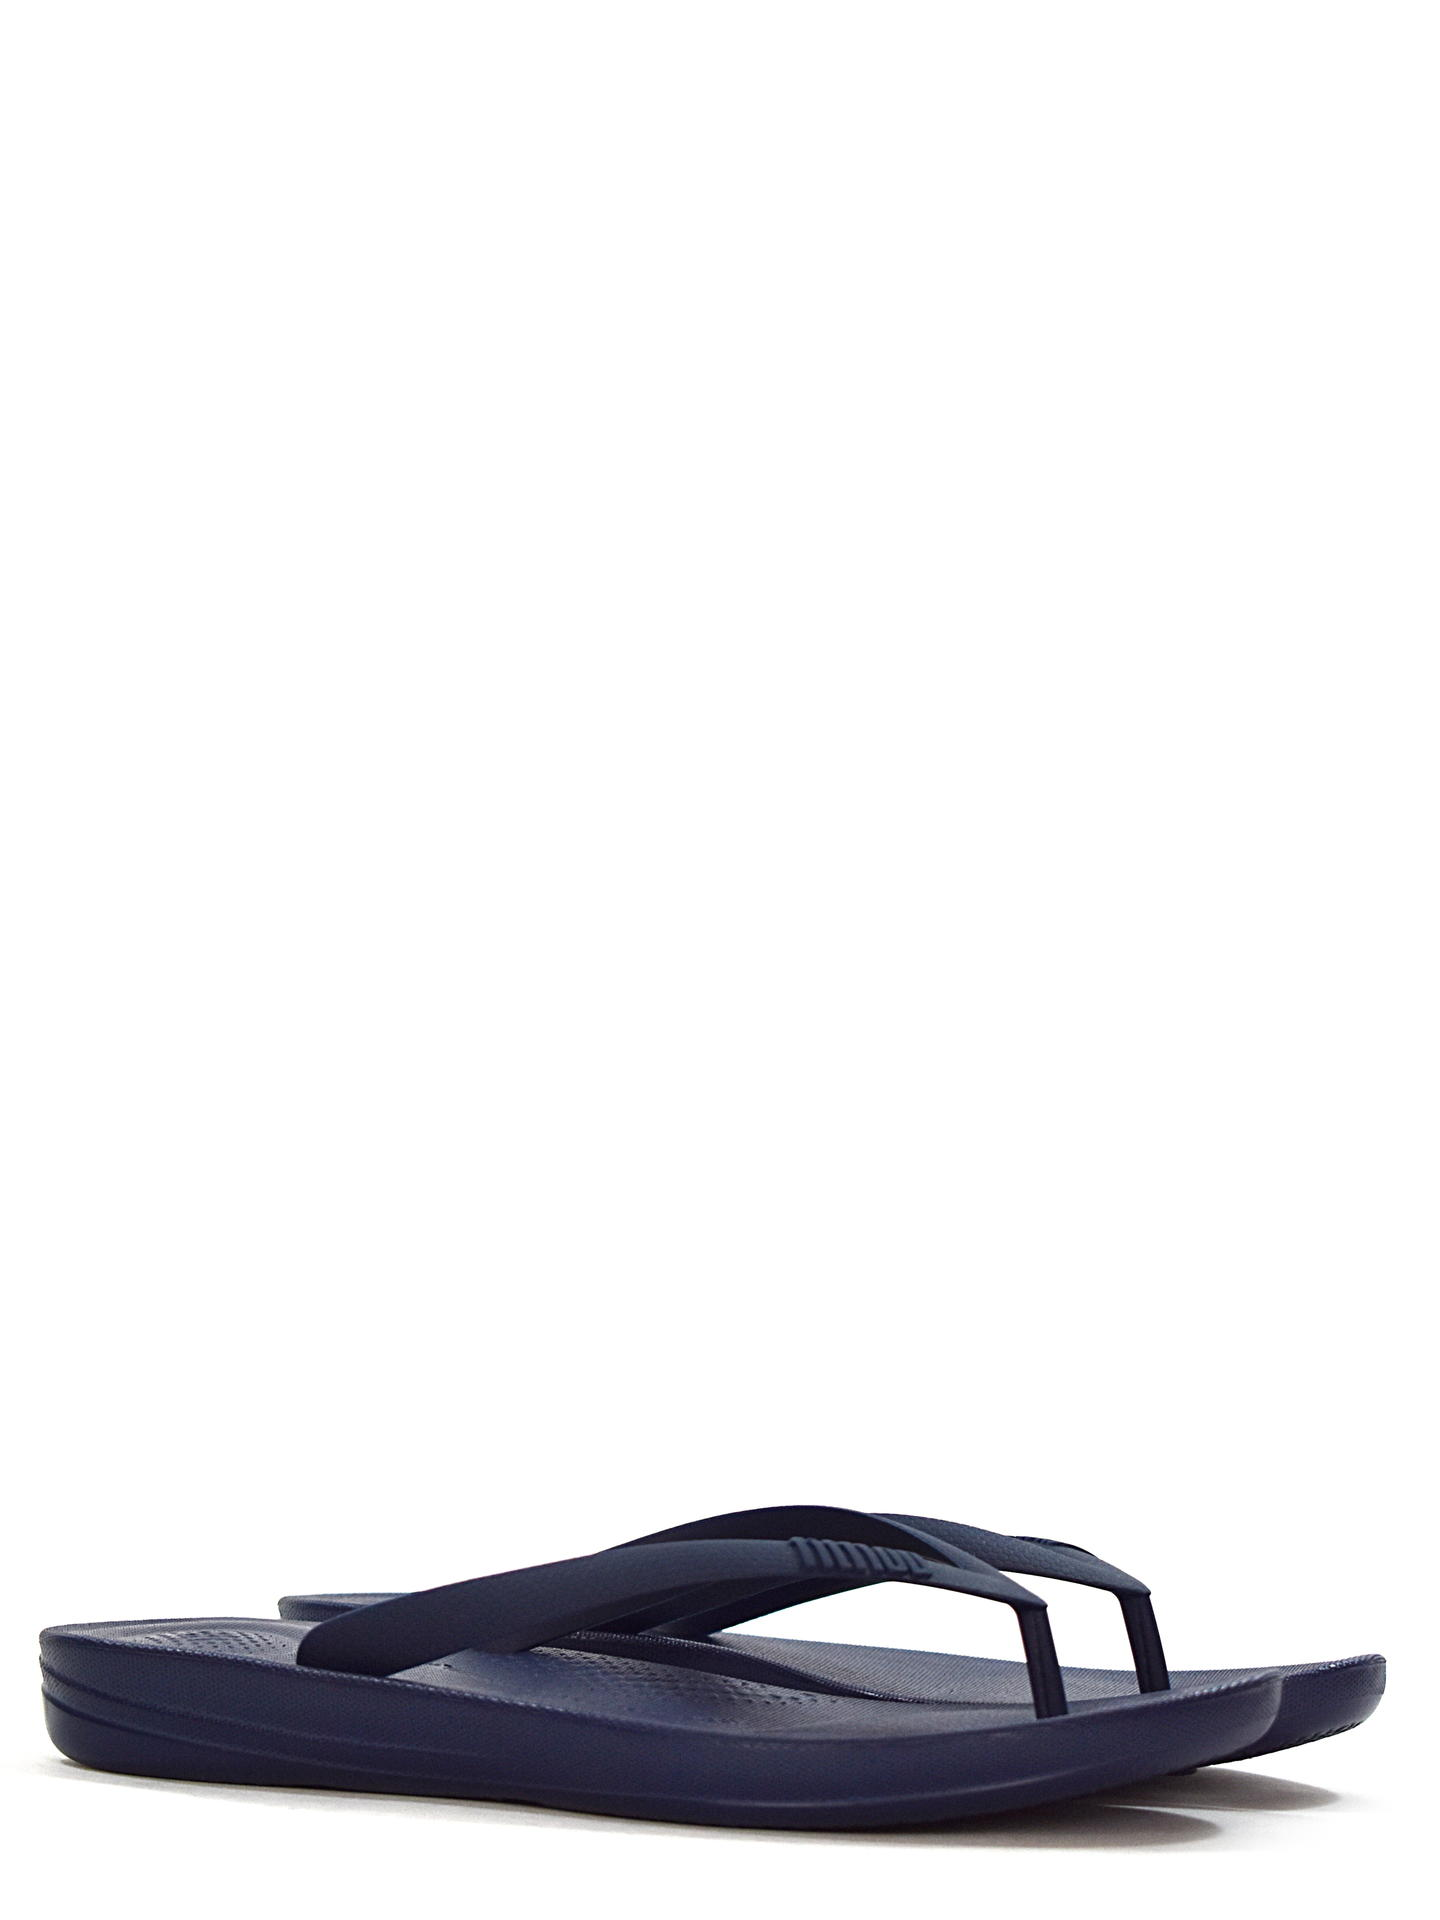 SANDALO BASSO FITFLOP IQUSHIONM BLUE